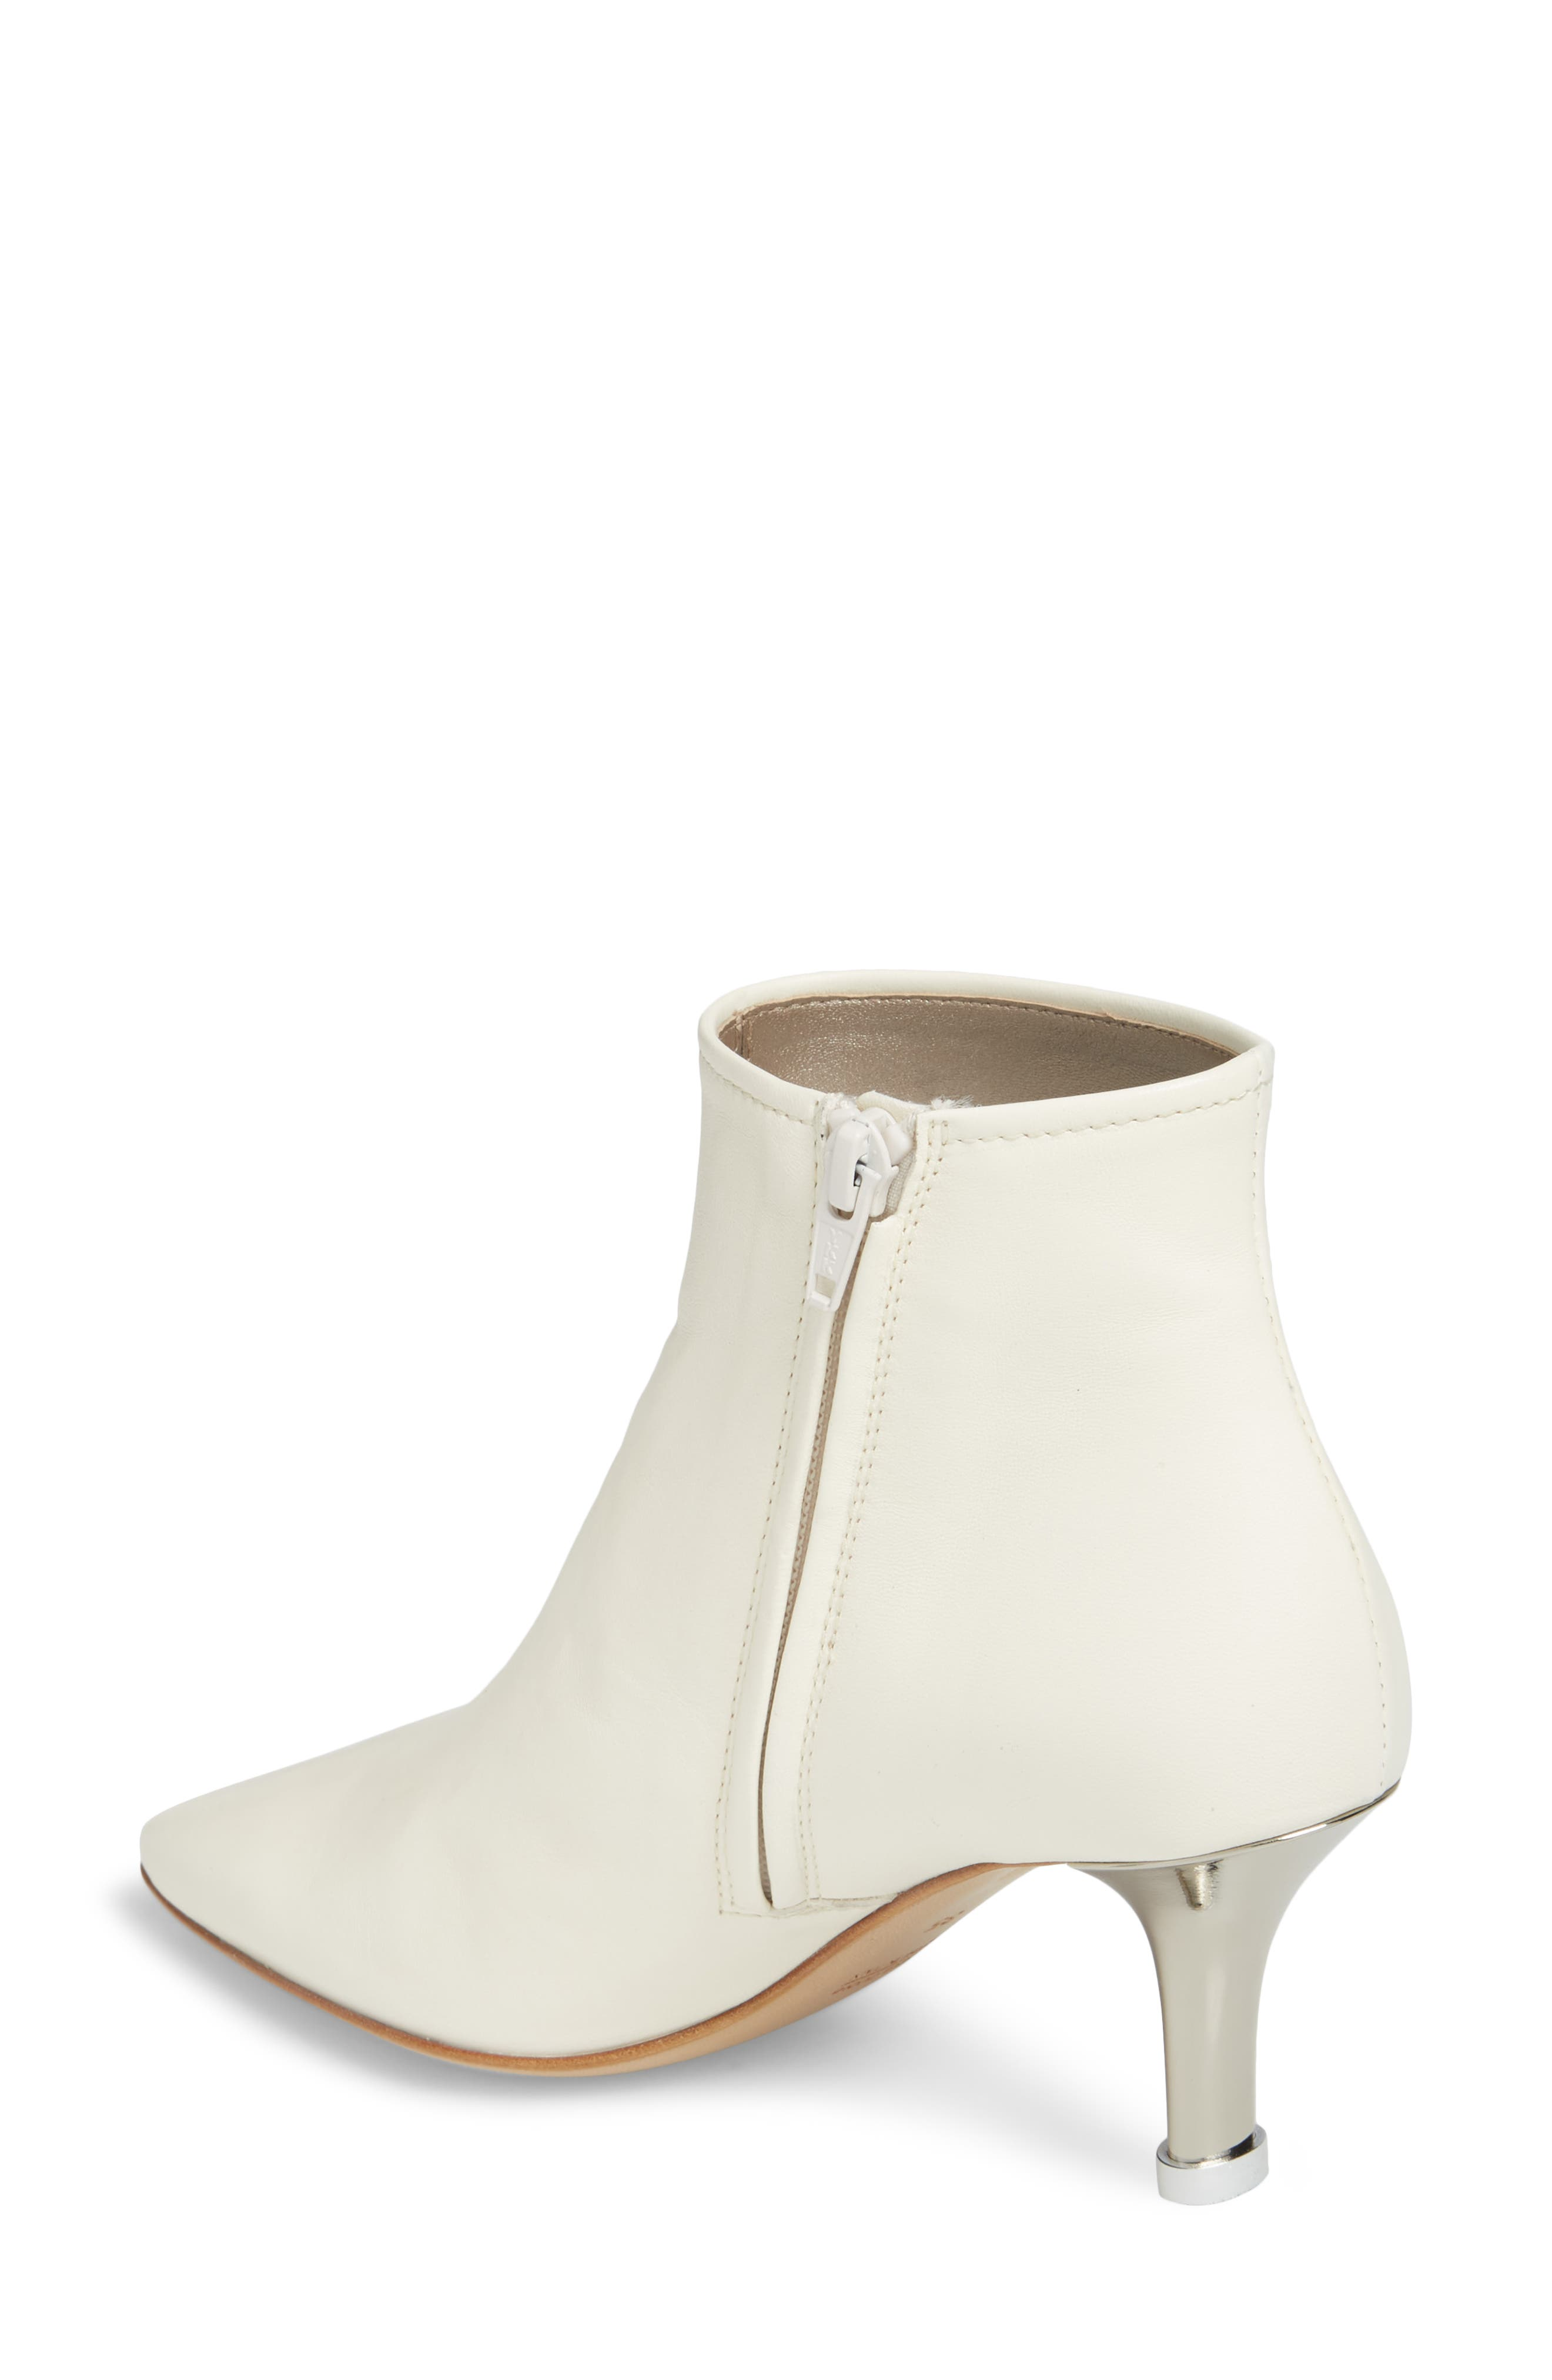 Summer Bootie,                             Alternate thumbnail 2, color,                             OFF WHITE LEATHER